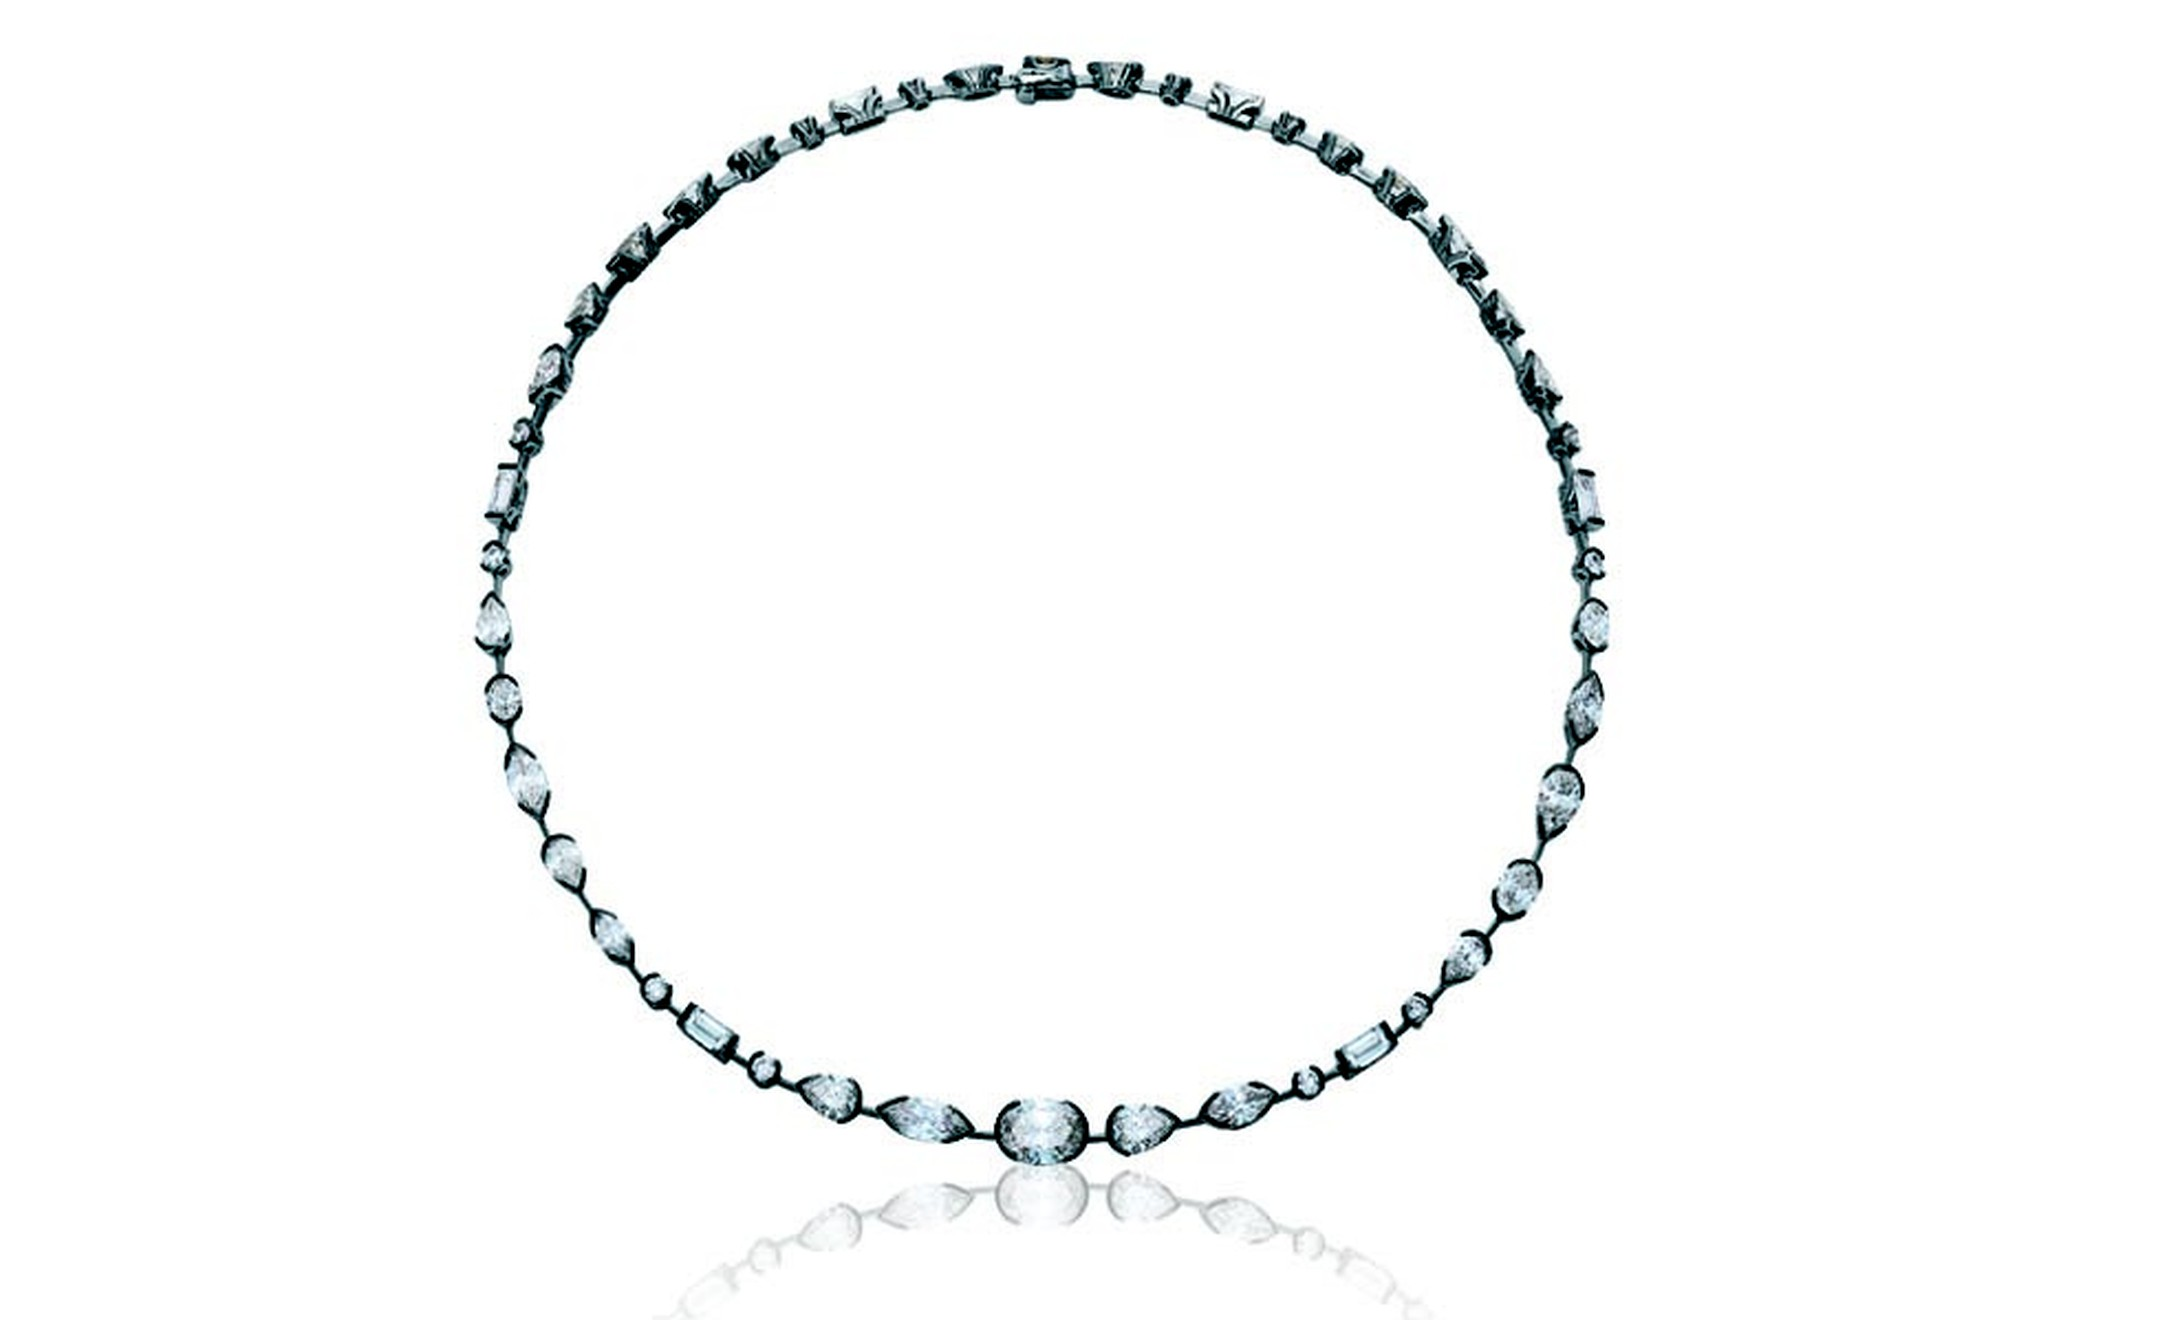 DE BEERS, Swan Lake Necklace White Gold and Diamonds. POA